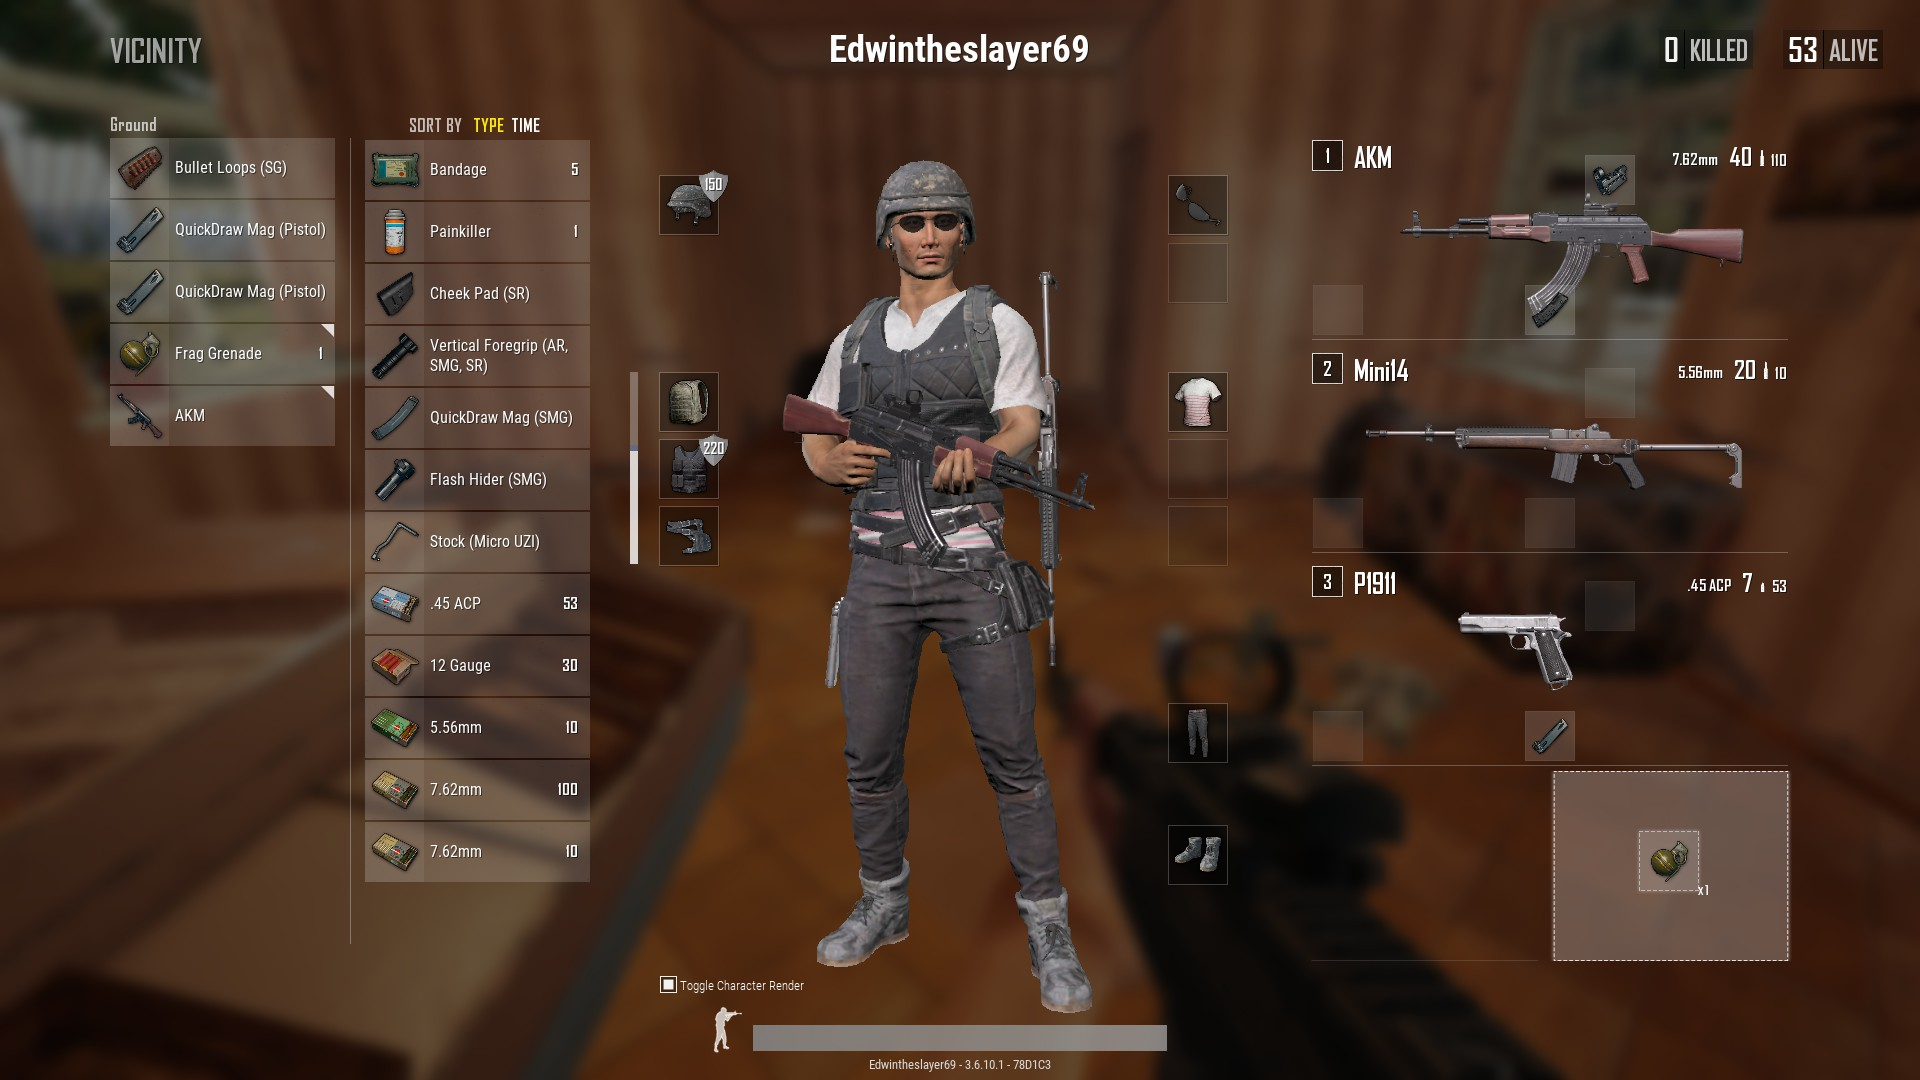 PUBG: How to equip guns, attachments and grenades (Guide) - Metabomb